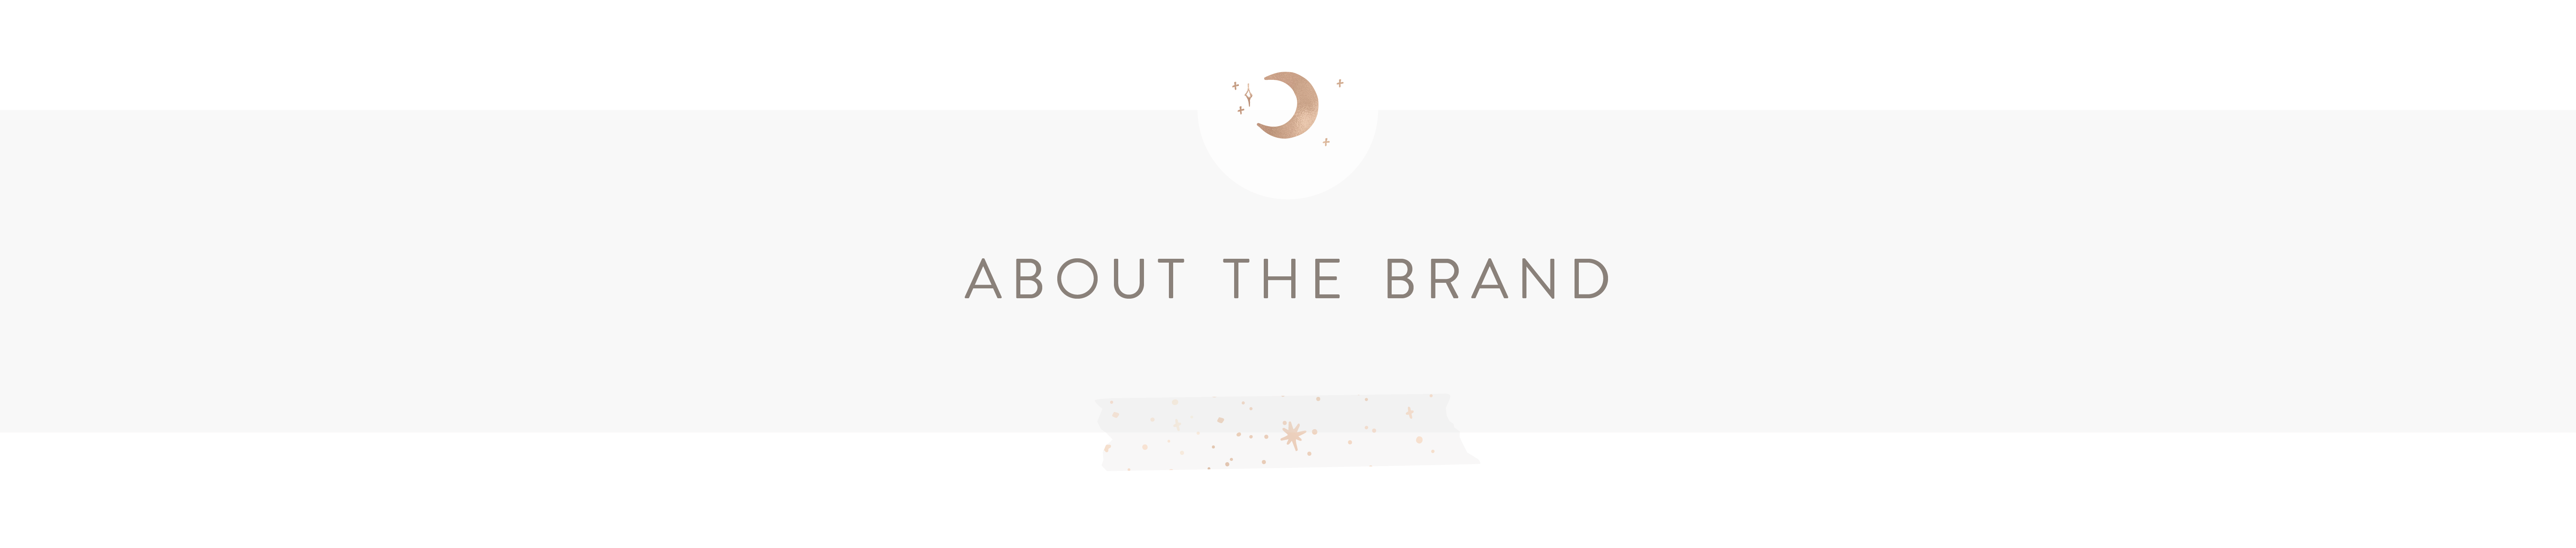 About the Brand By the Moon - Inspiration Cards & Displays